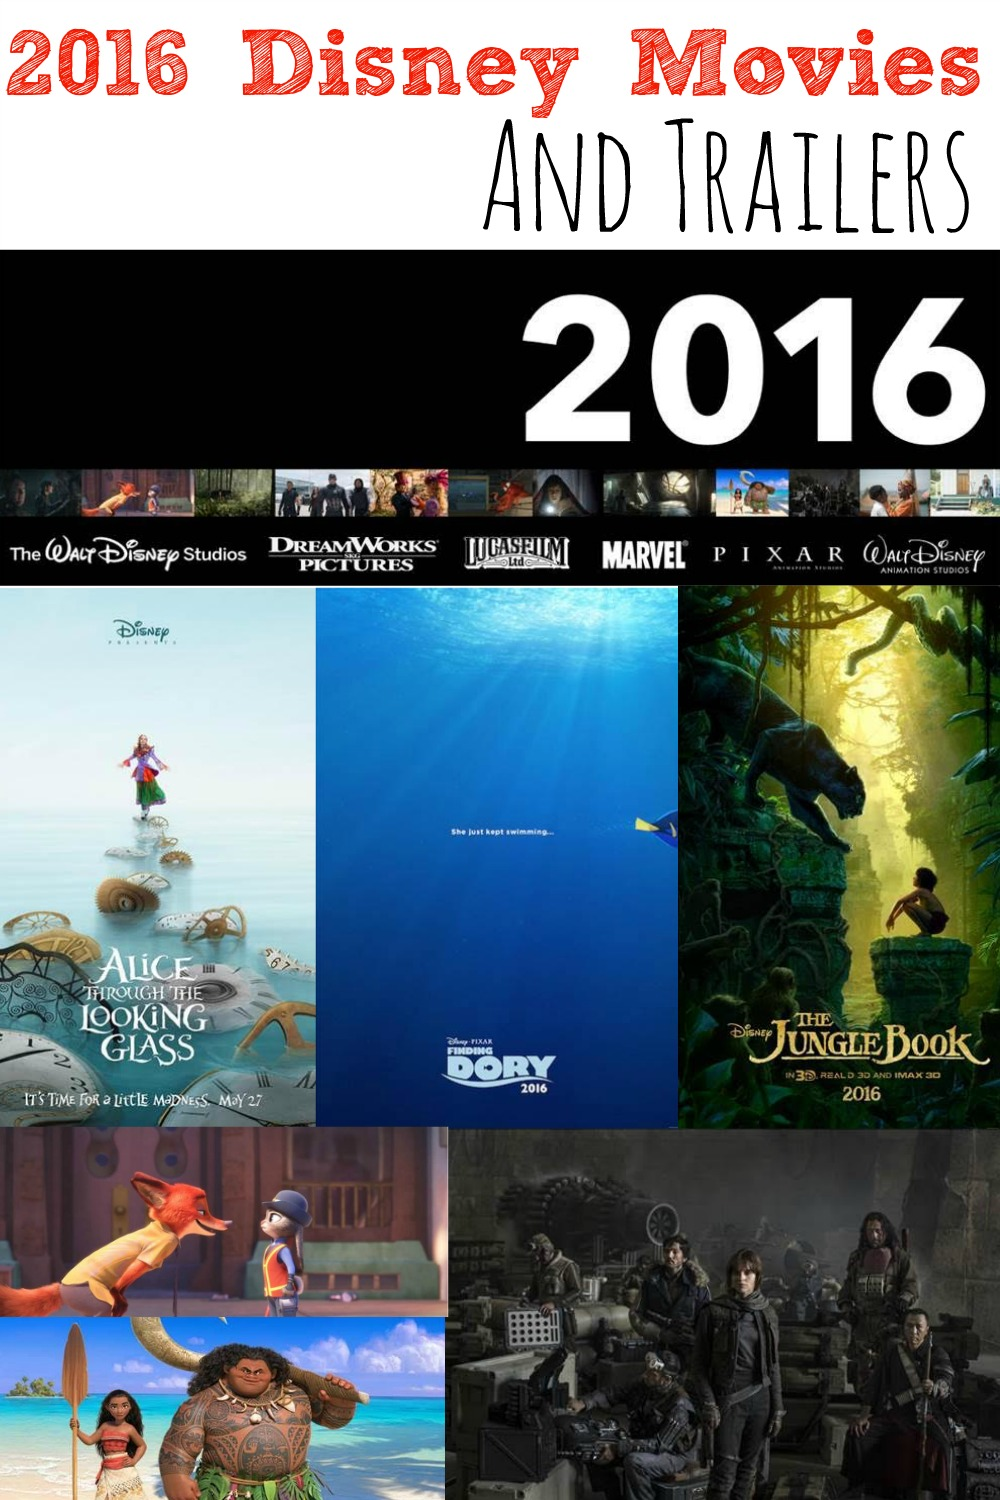 2016 Disney Movies and Trailers